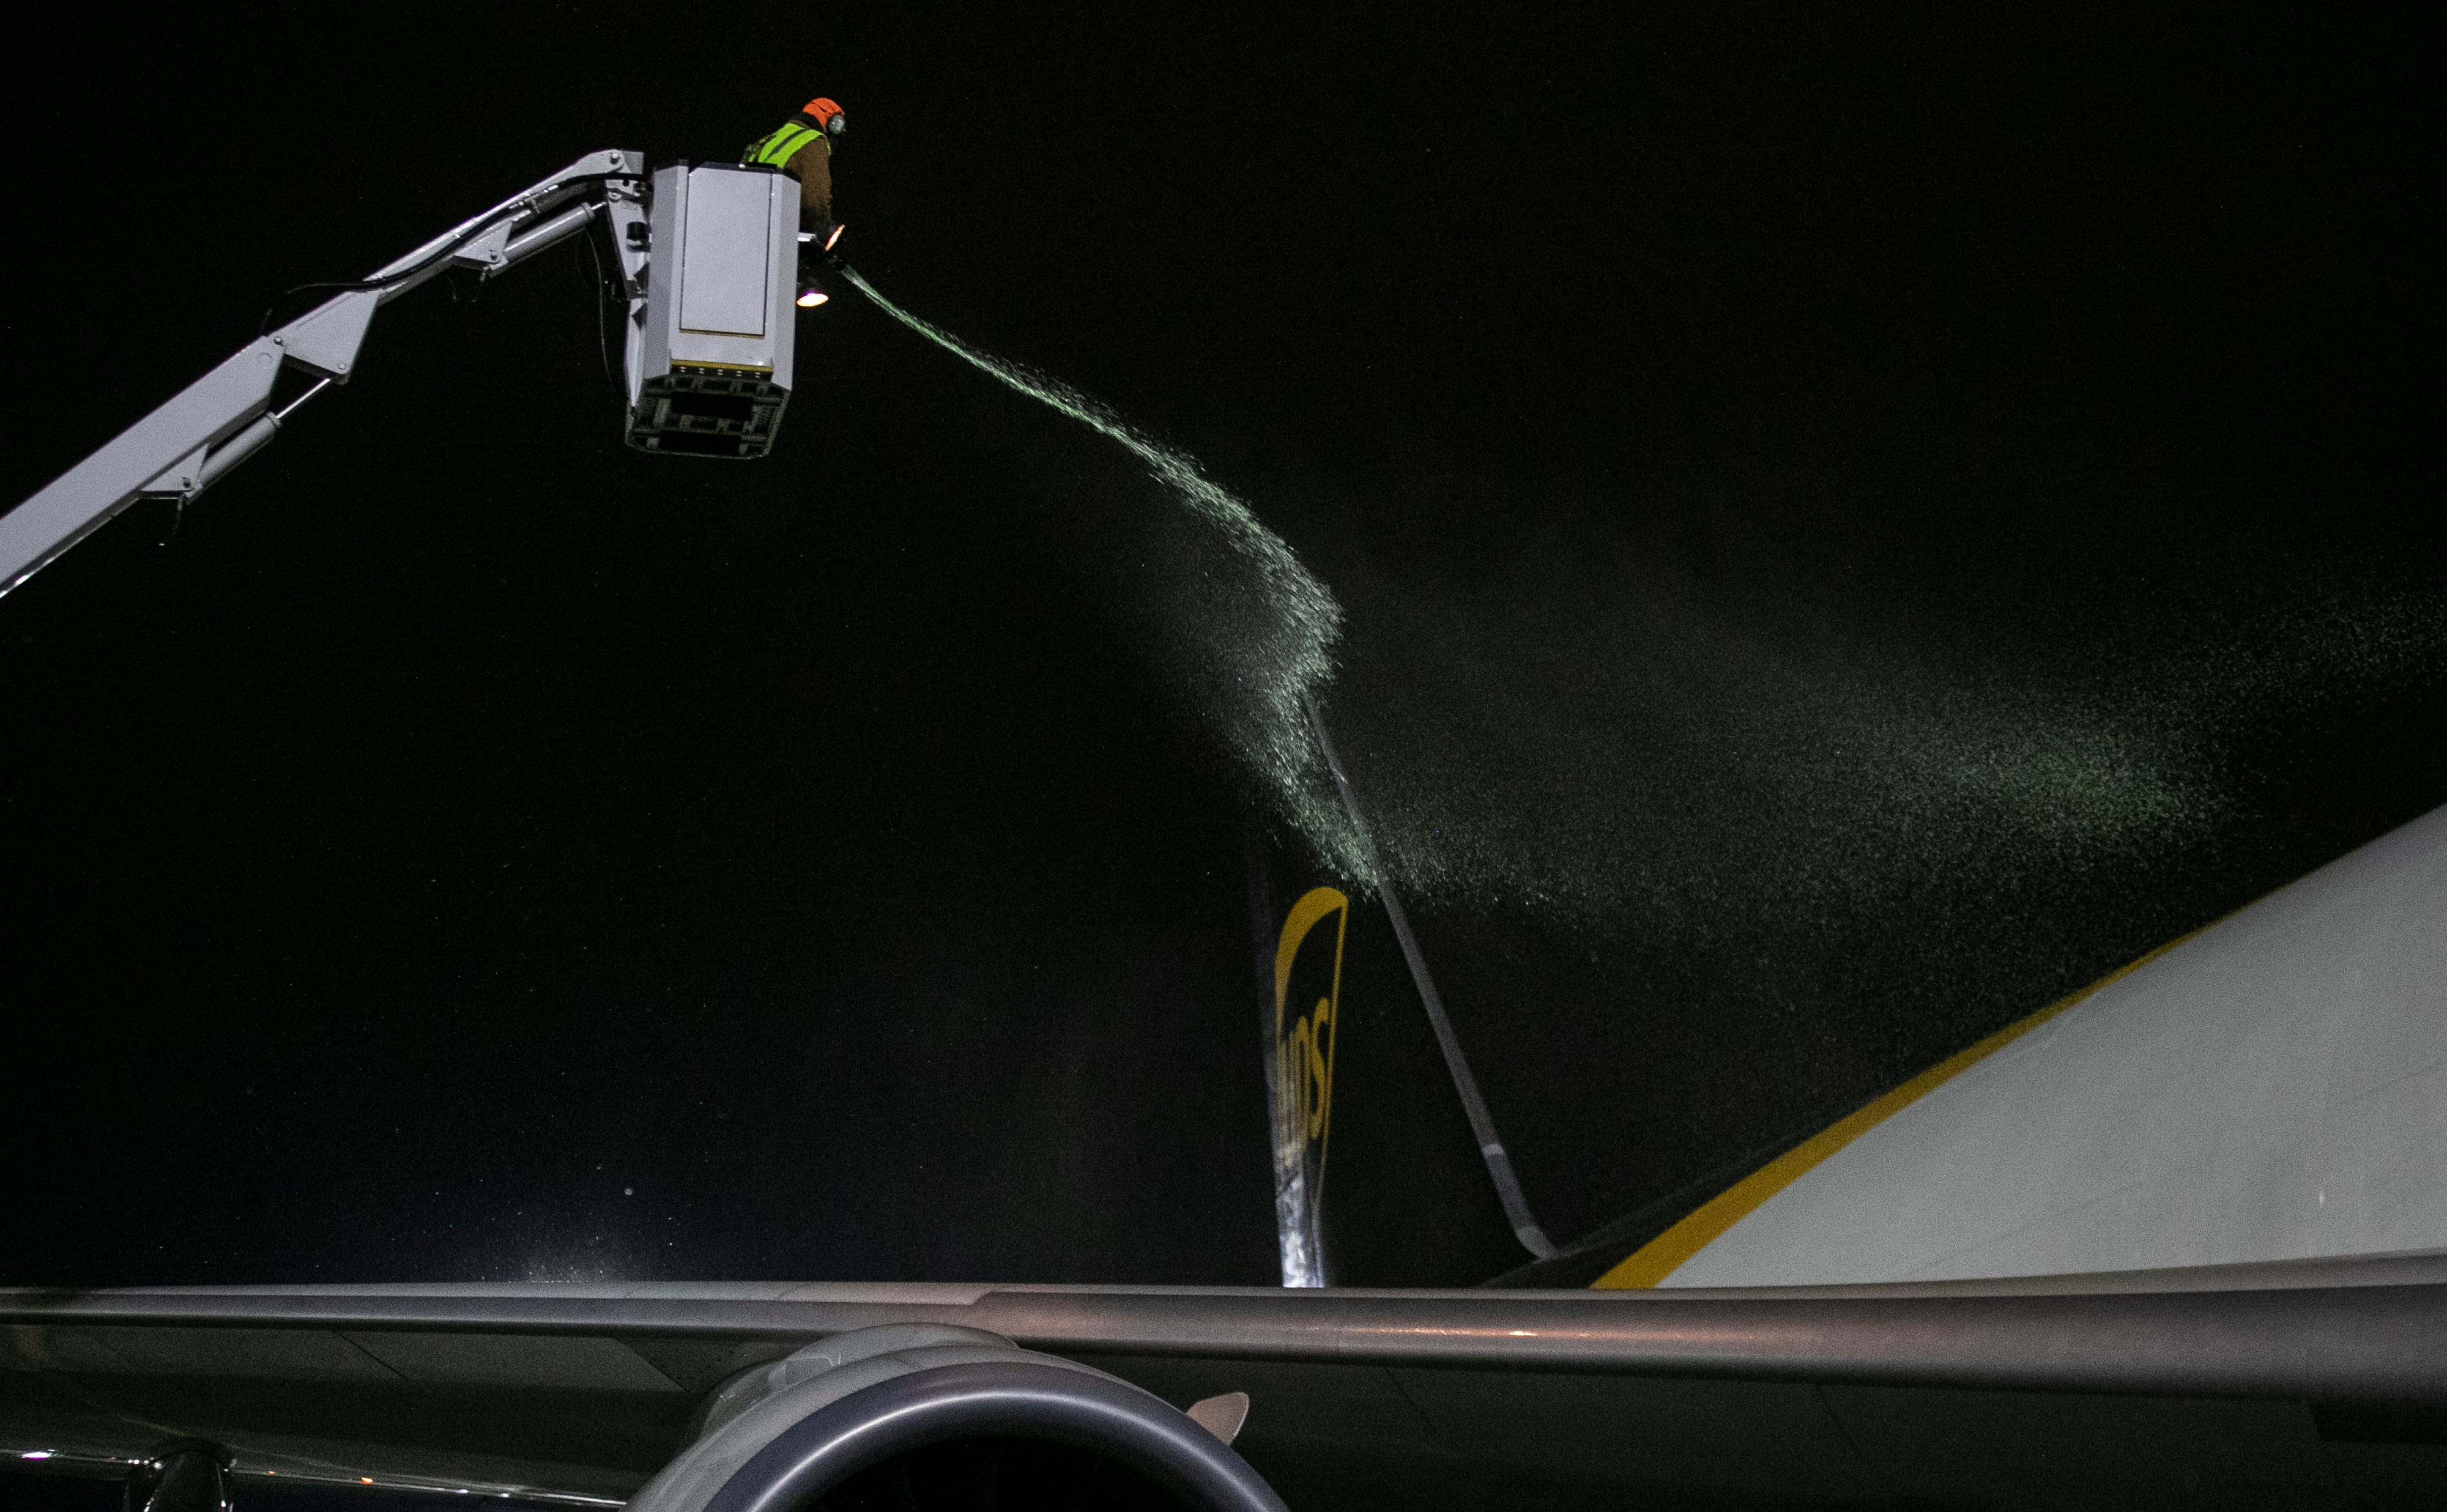 1:53 AM  Deicing fluid is sprayed on the tail of a UPS plane on Jan. 21, 2020. Around 125 UPS planes land each night at Louisville Muhammad Ali International Airport, with around 1.2 million packages sorted.